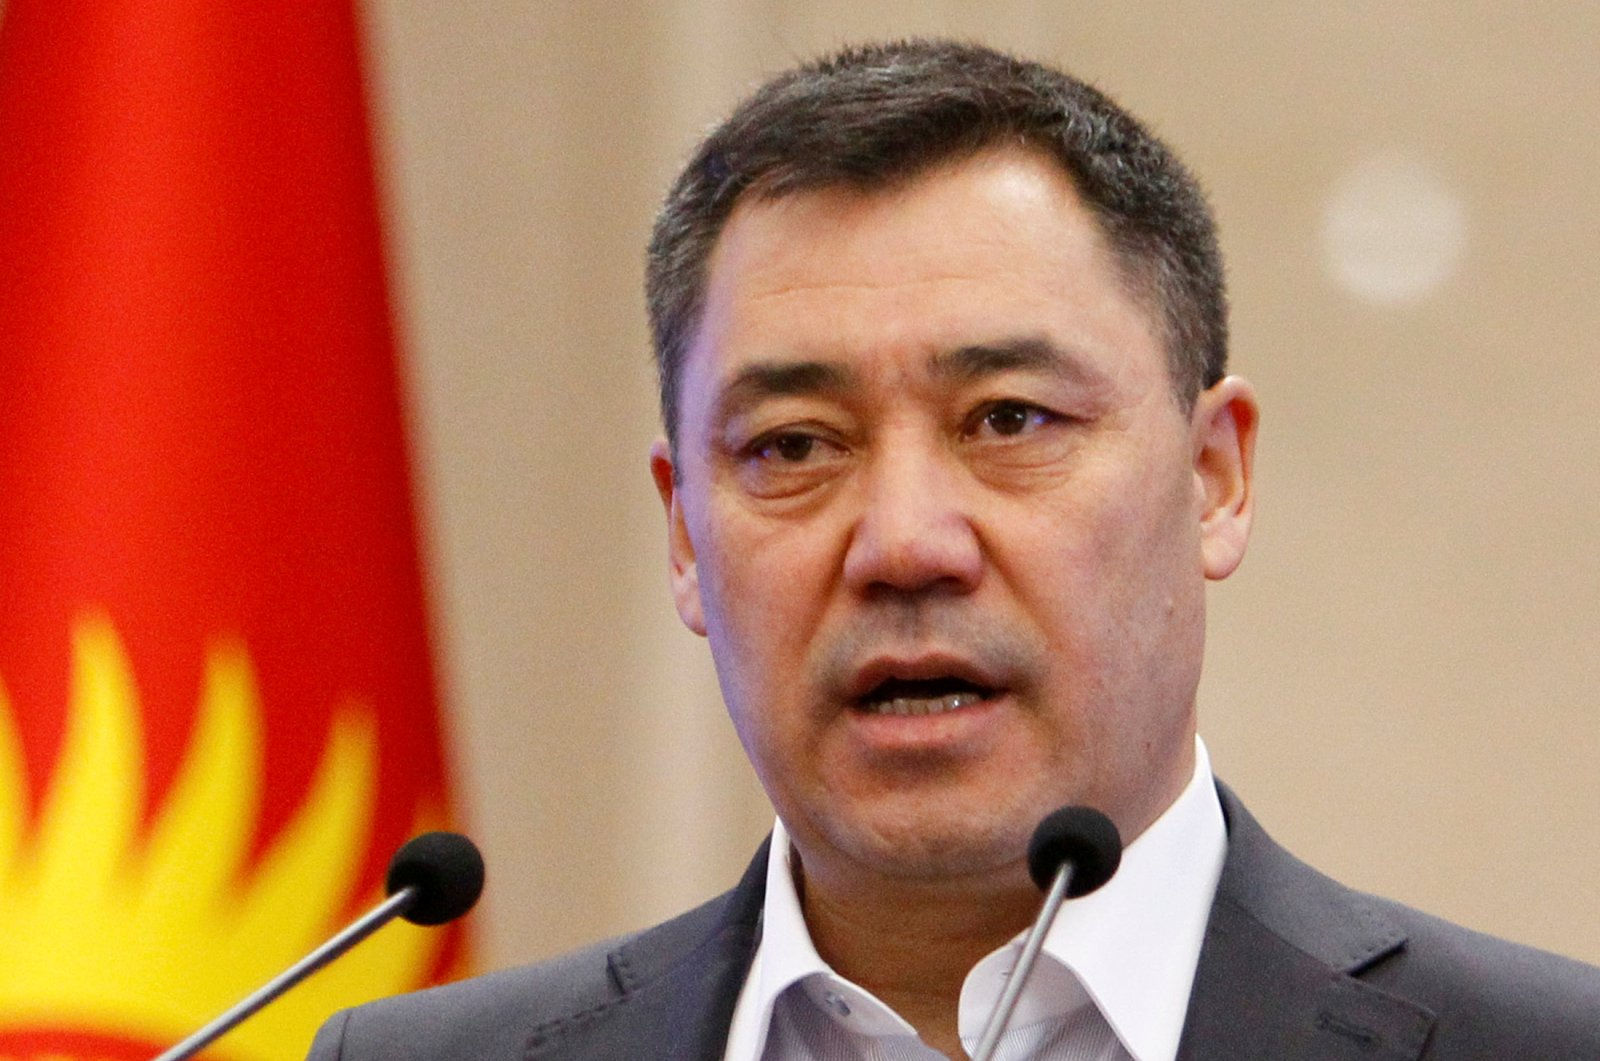 Kyrgyzstan's Prime Minister Sadyr Zhaparov delivers a speech during an extraordinary session of parliament in Bishkek, Kyrgyzstan, Oct. 16, 2020. (Reuters Photo)